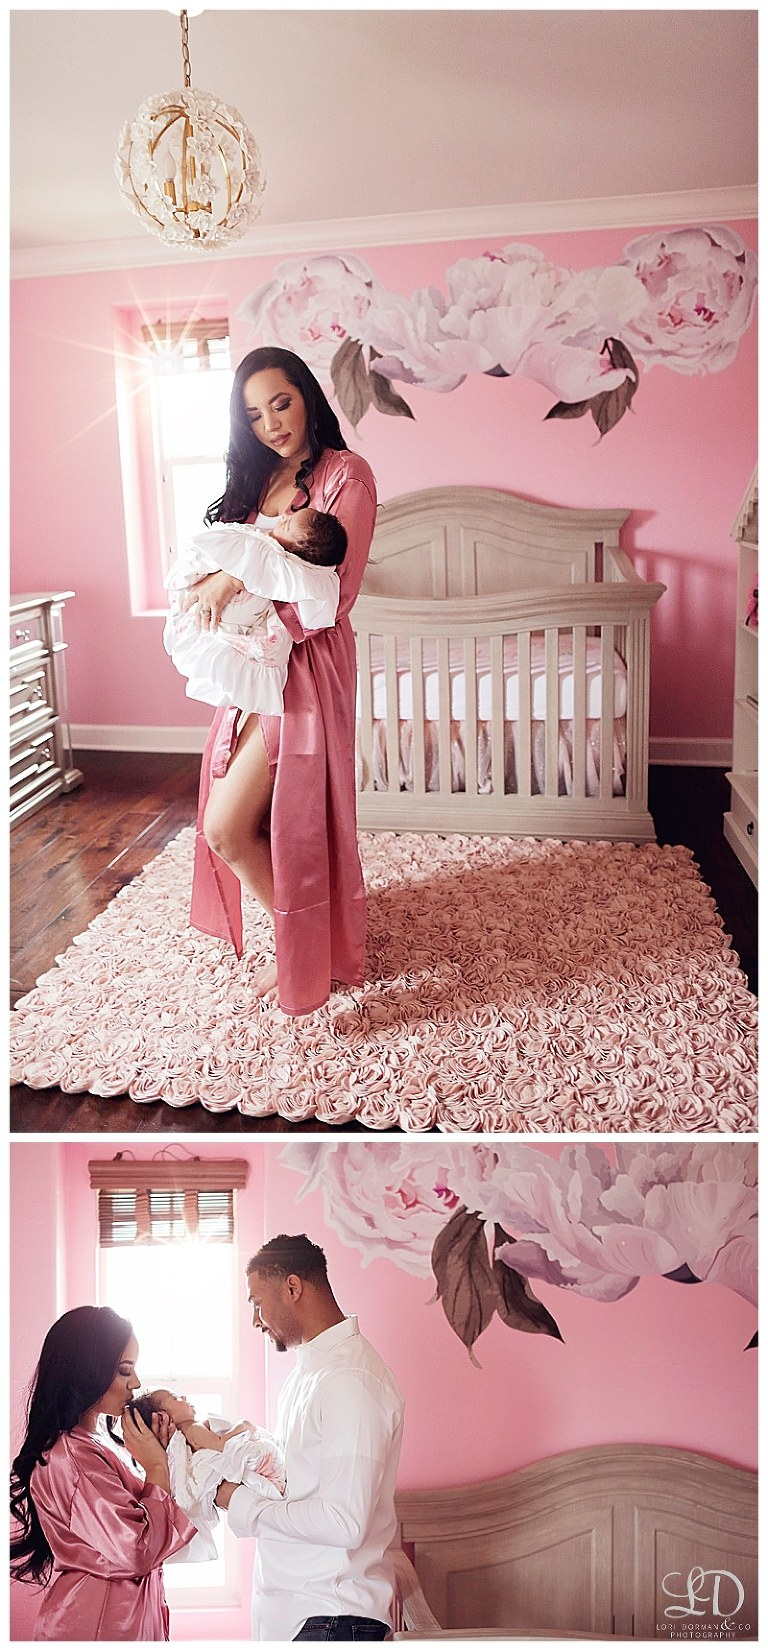 sweet maternity photoshoot-lori dorman photography-maternity boudoir-professional photographer_4903.jpg